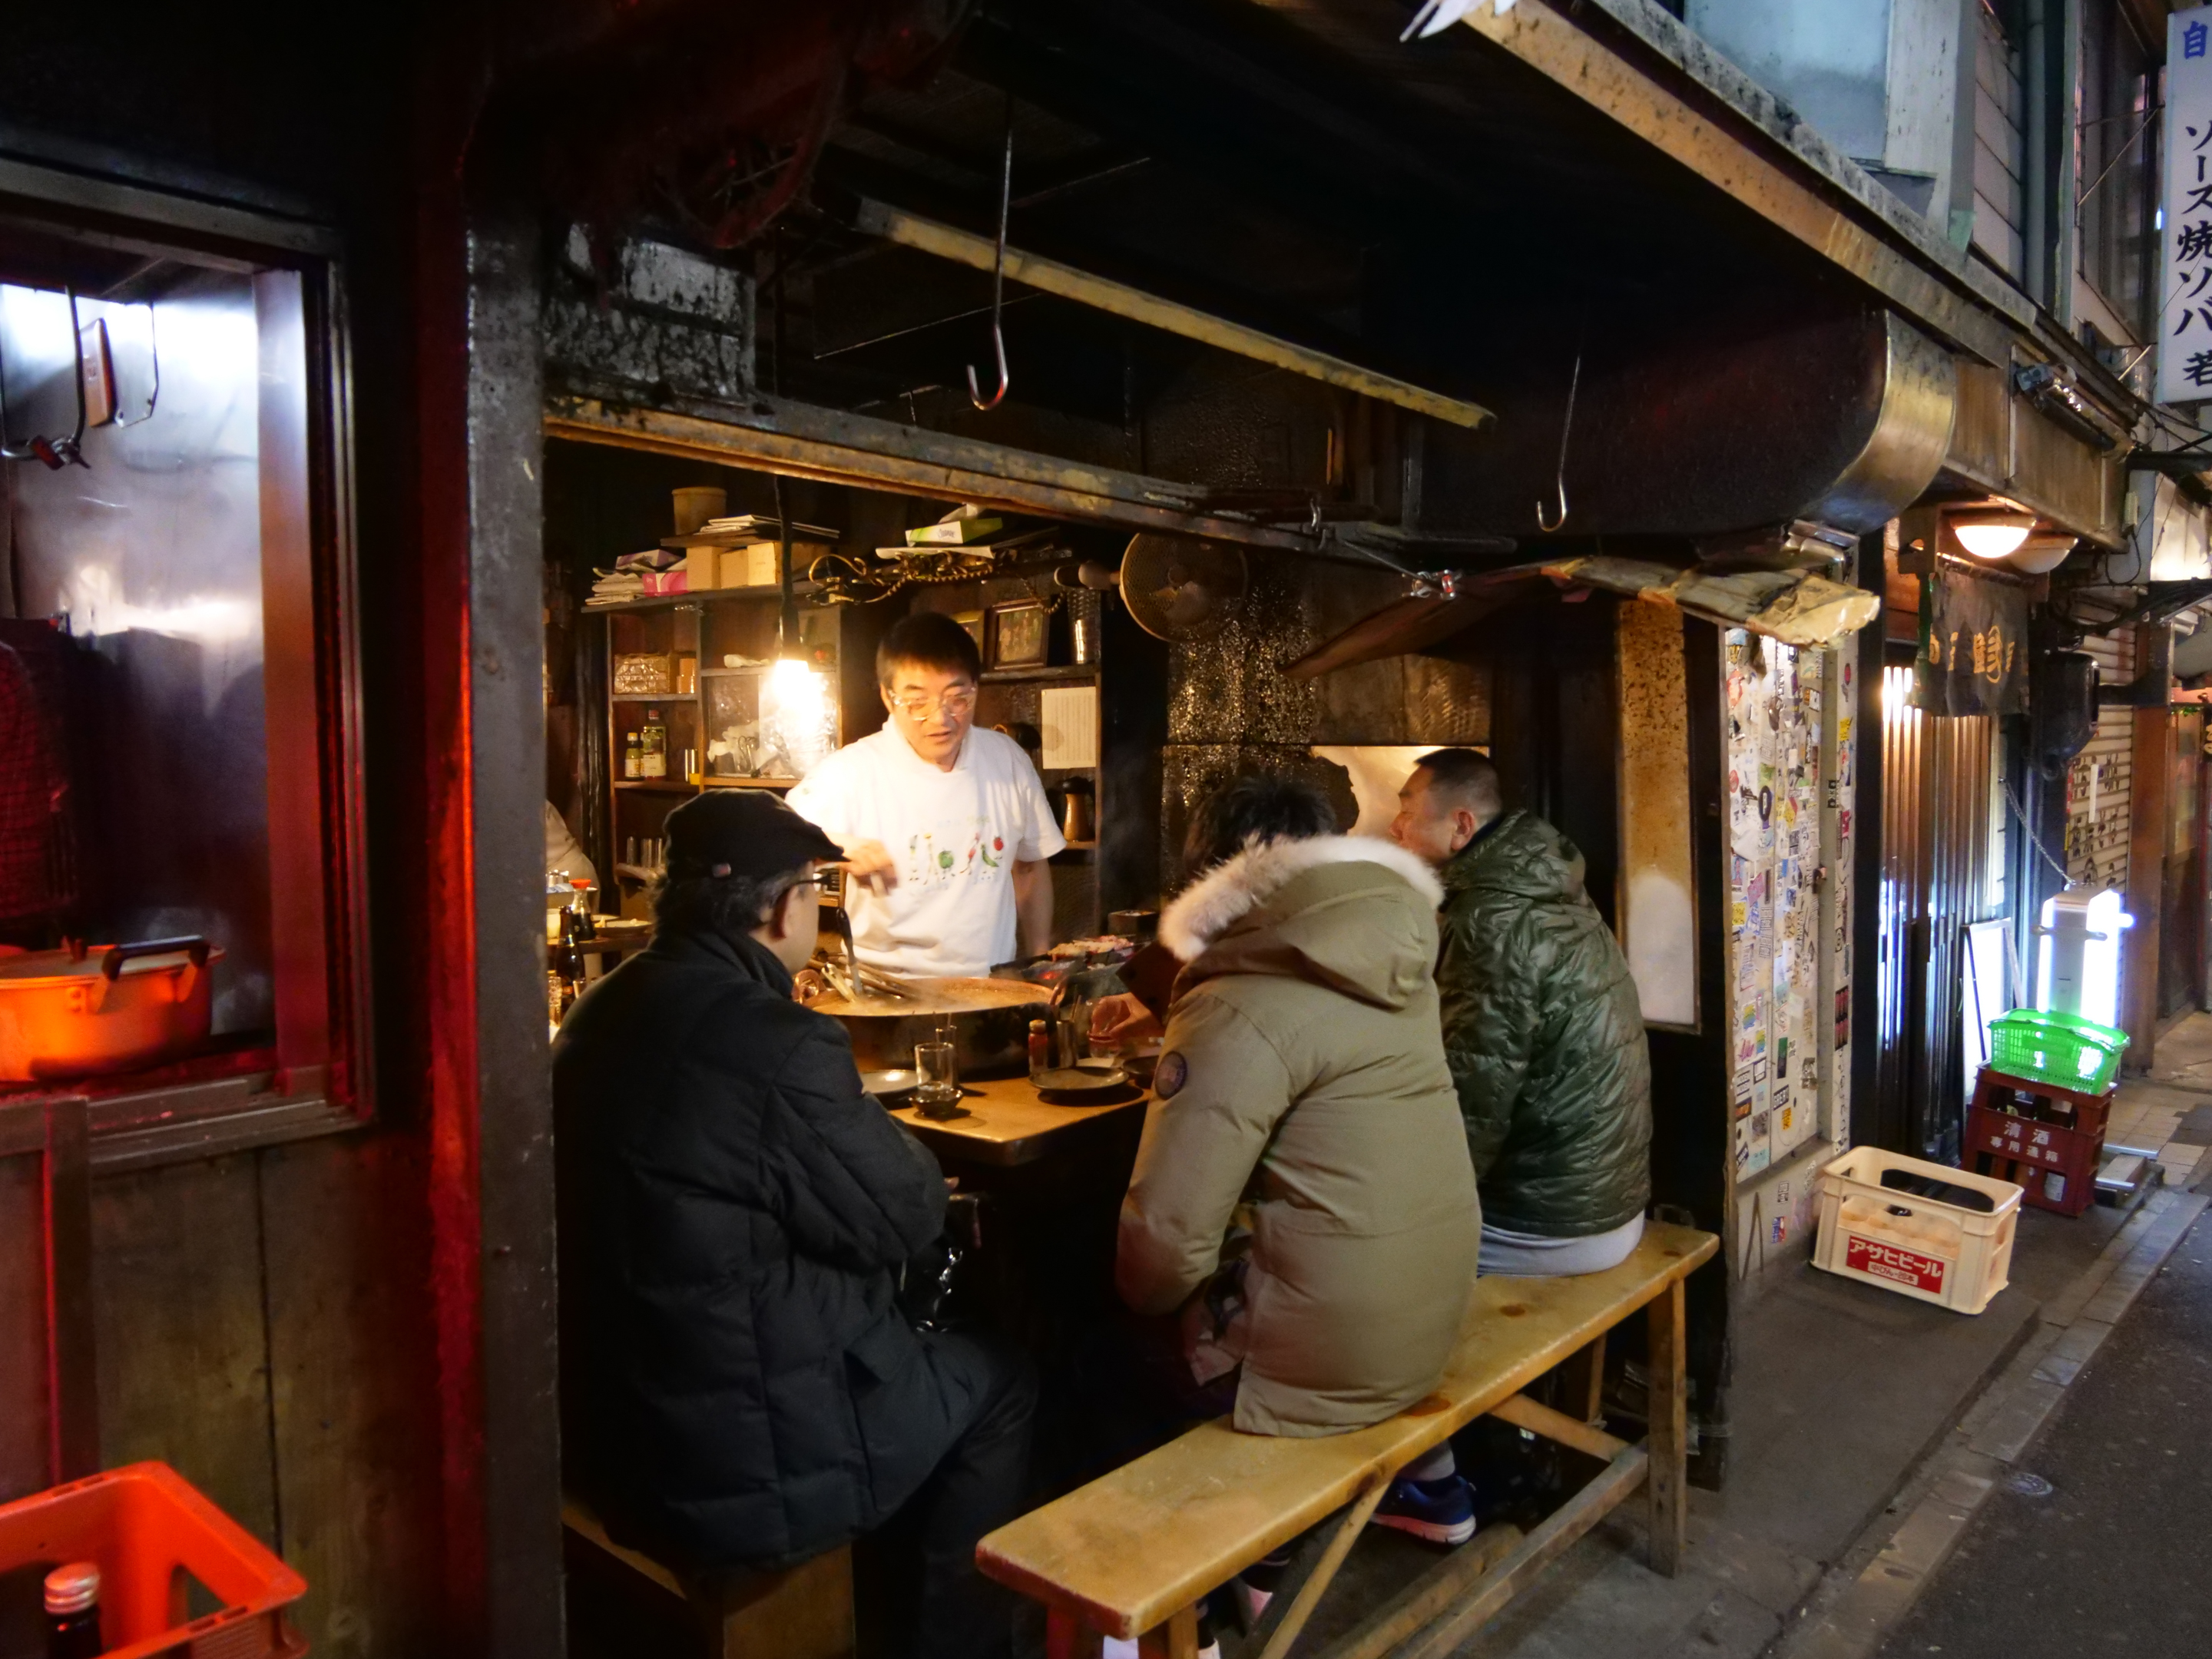 Locals drink in a izakaya after work